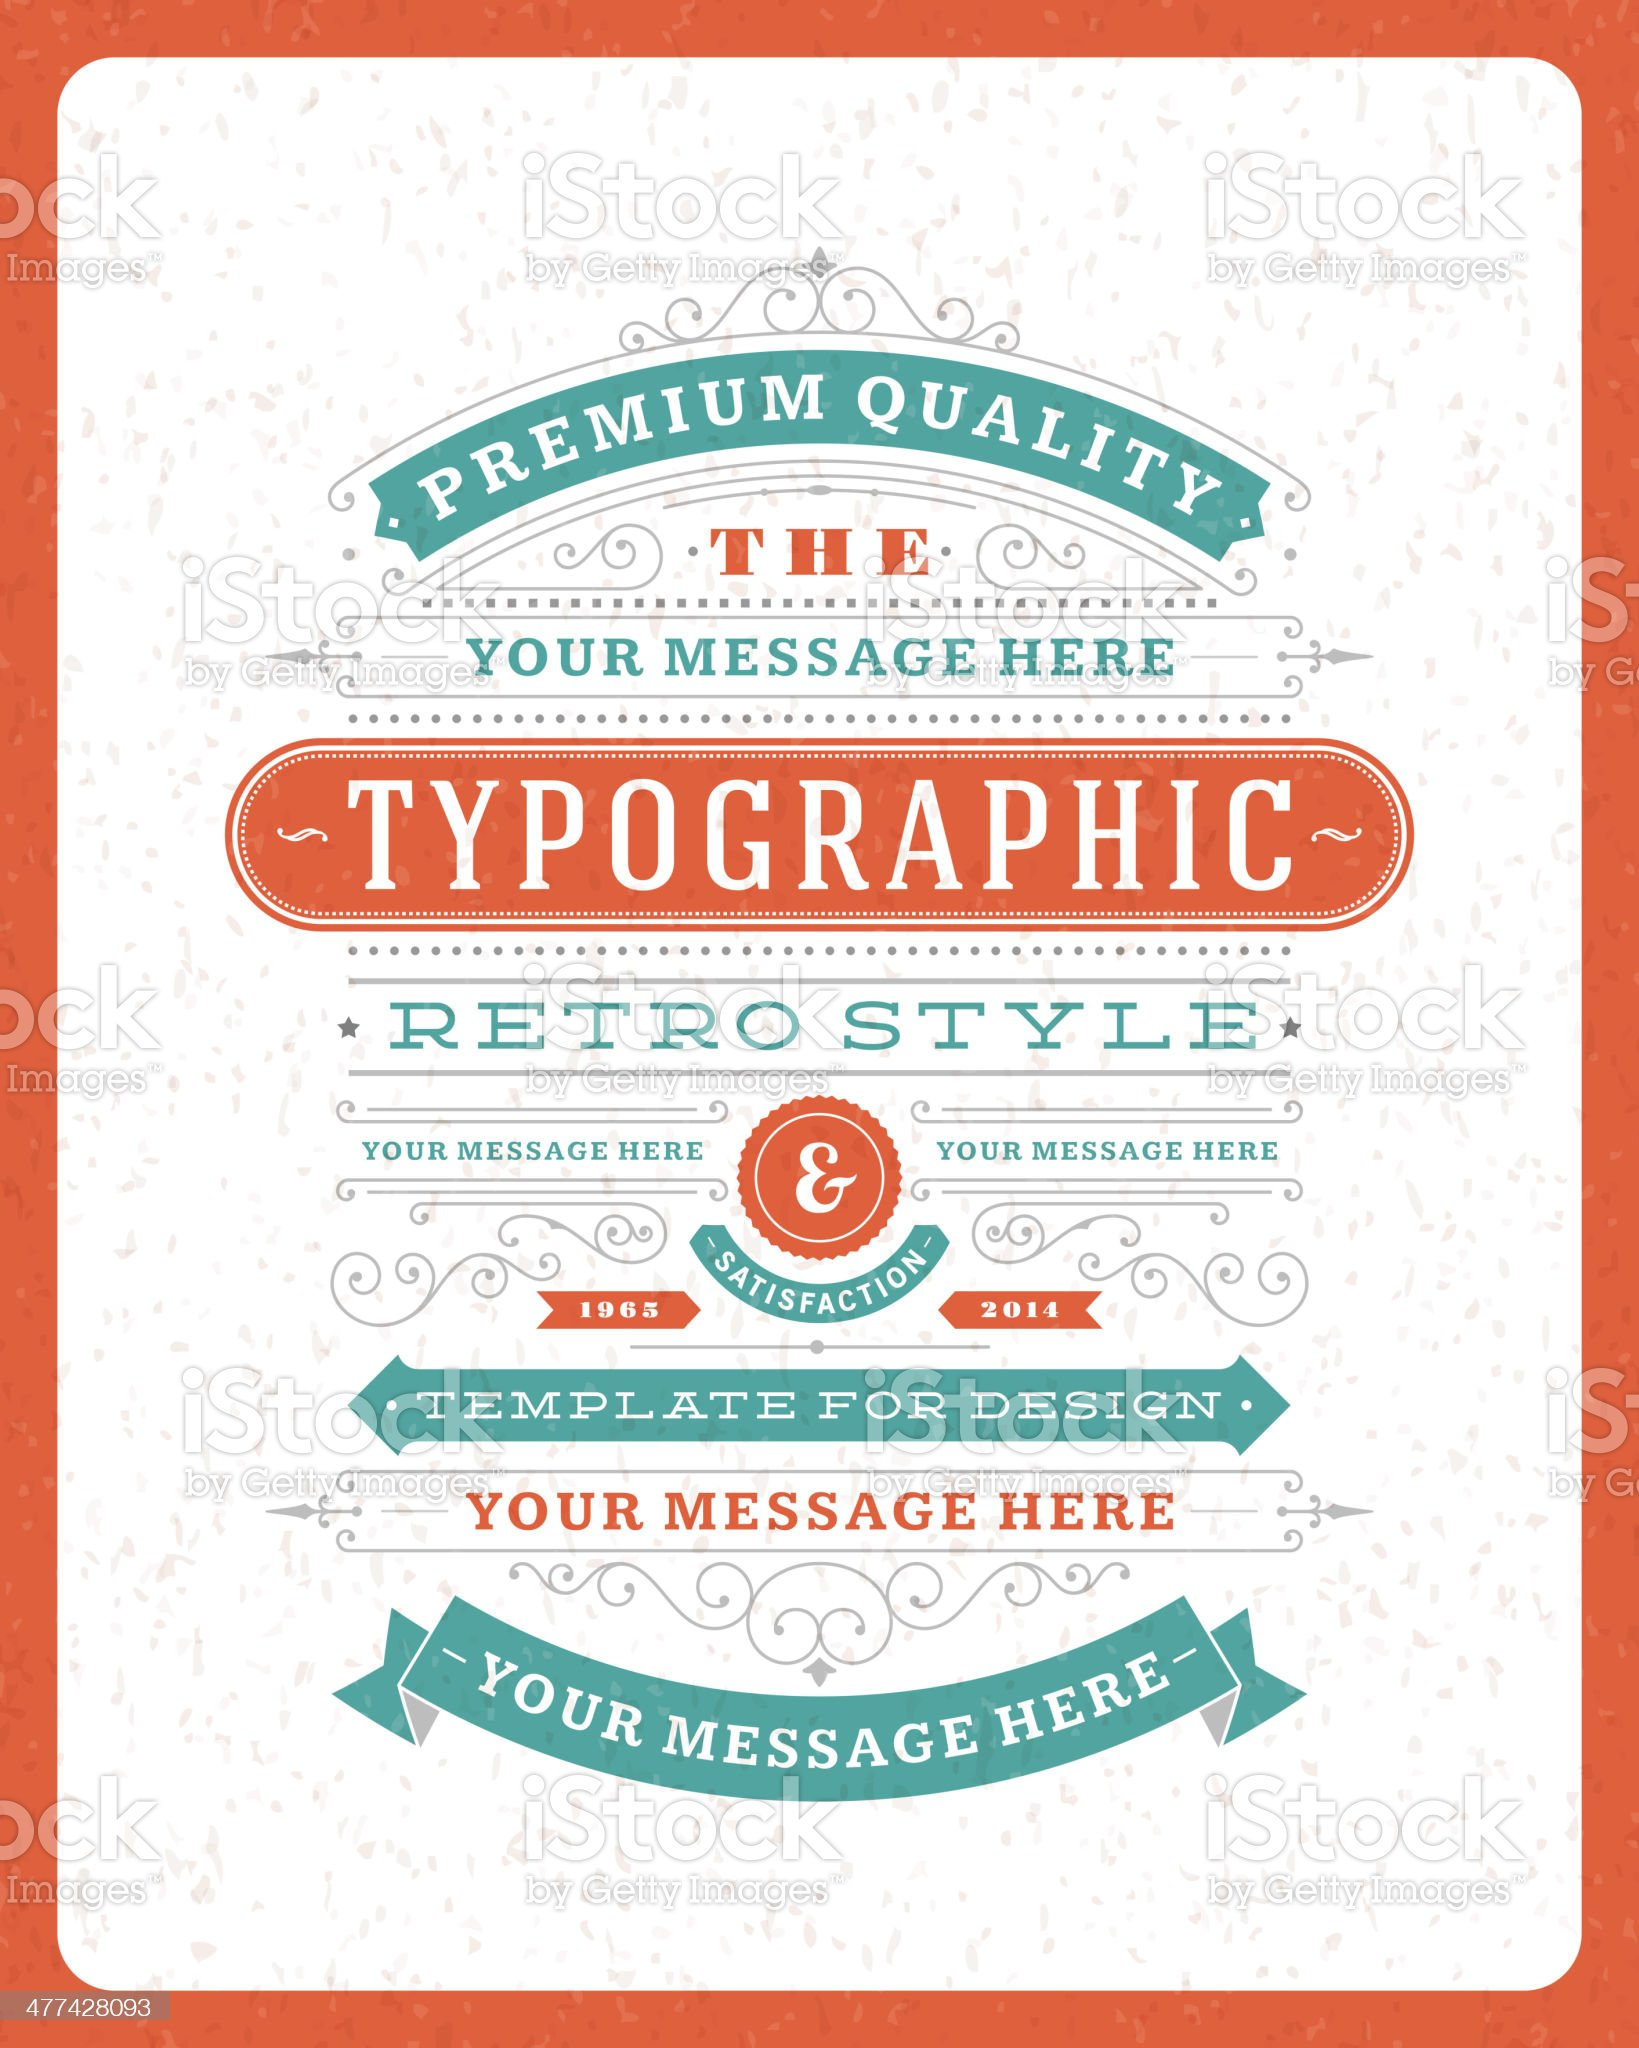 Retro typographic design elements royalty-free stock vector art